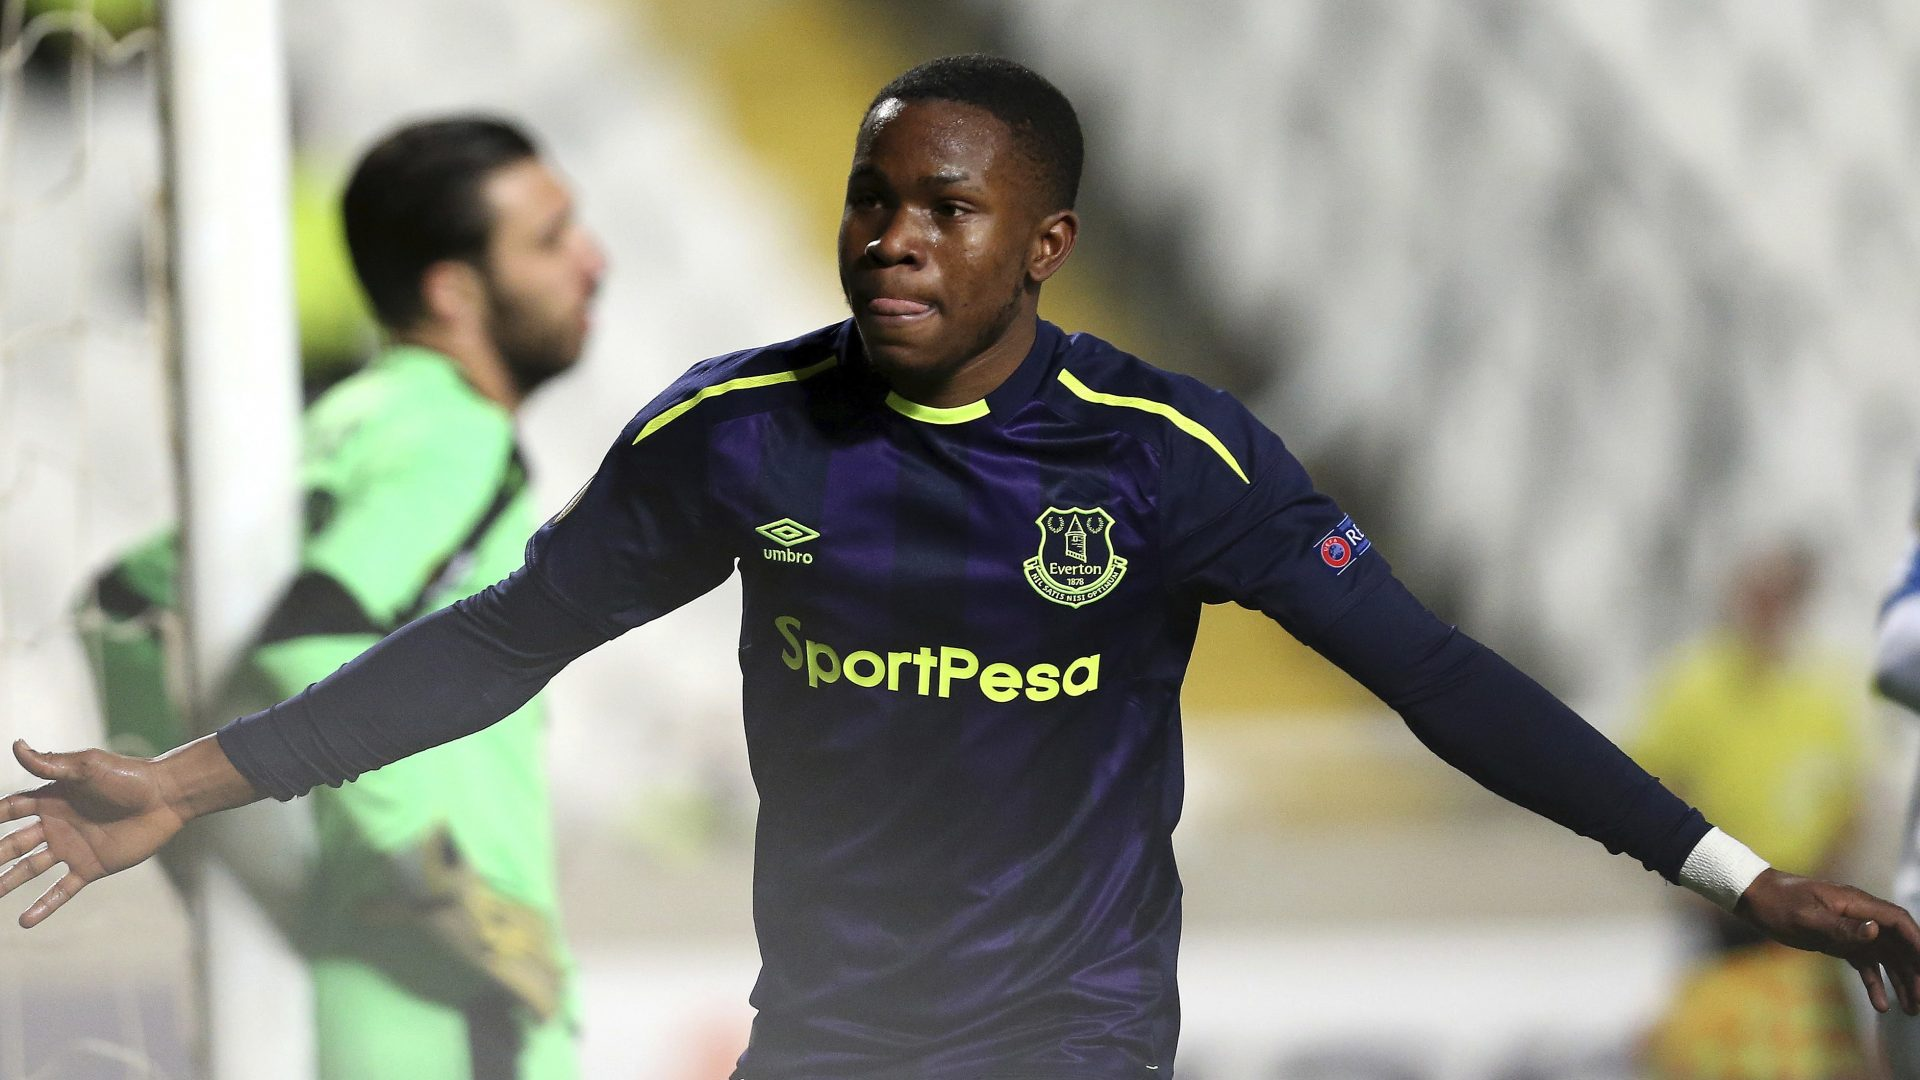 Ademola Lookman was on target twice as Everton beat Apollon Limasol in the Europa League